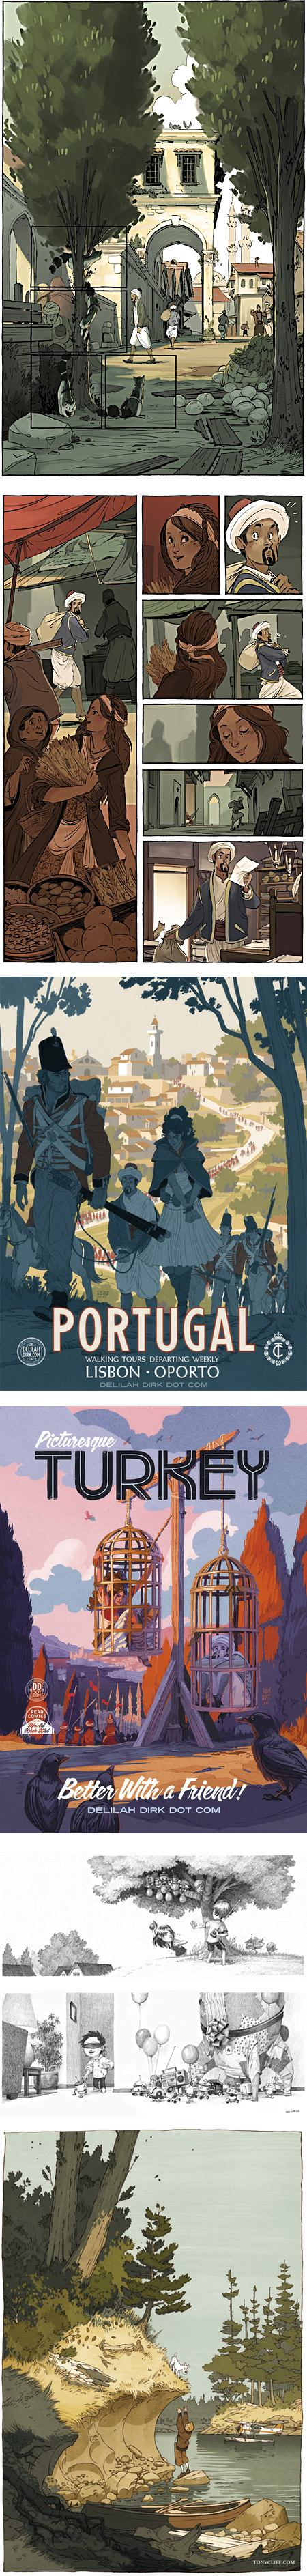 Tony Cliff: Delilah Dirk and the Turkish Lieutenant